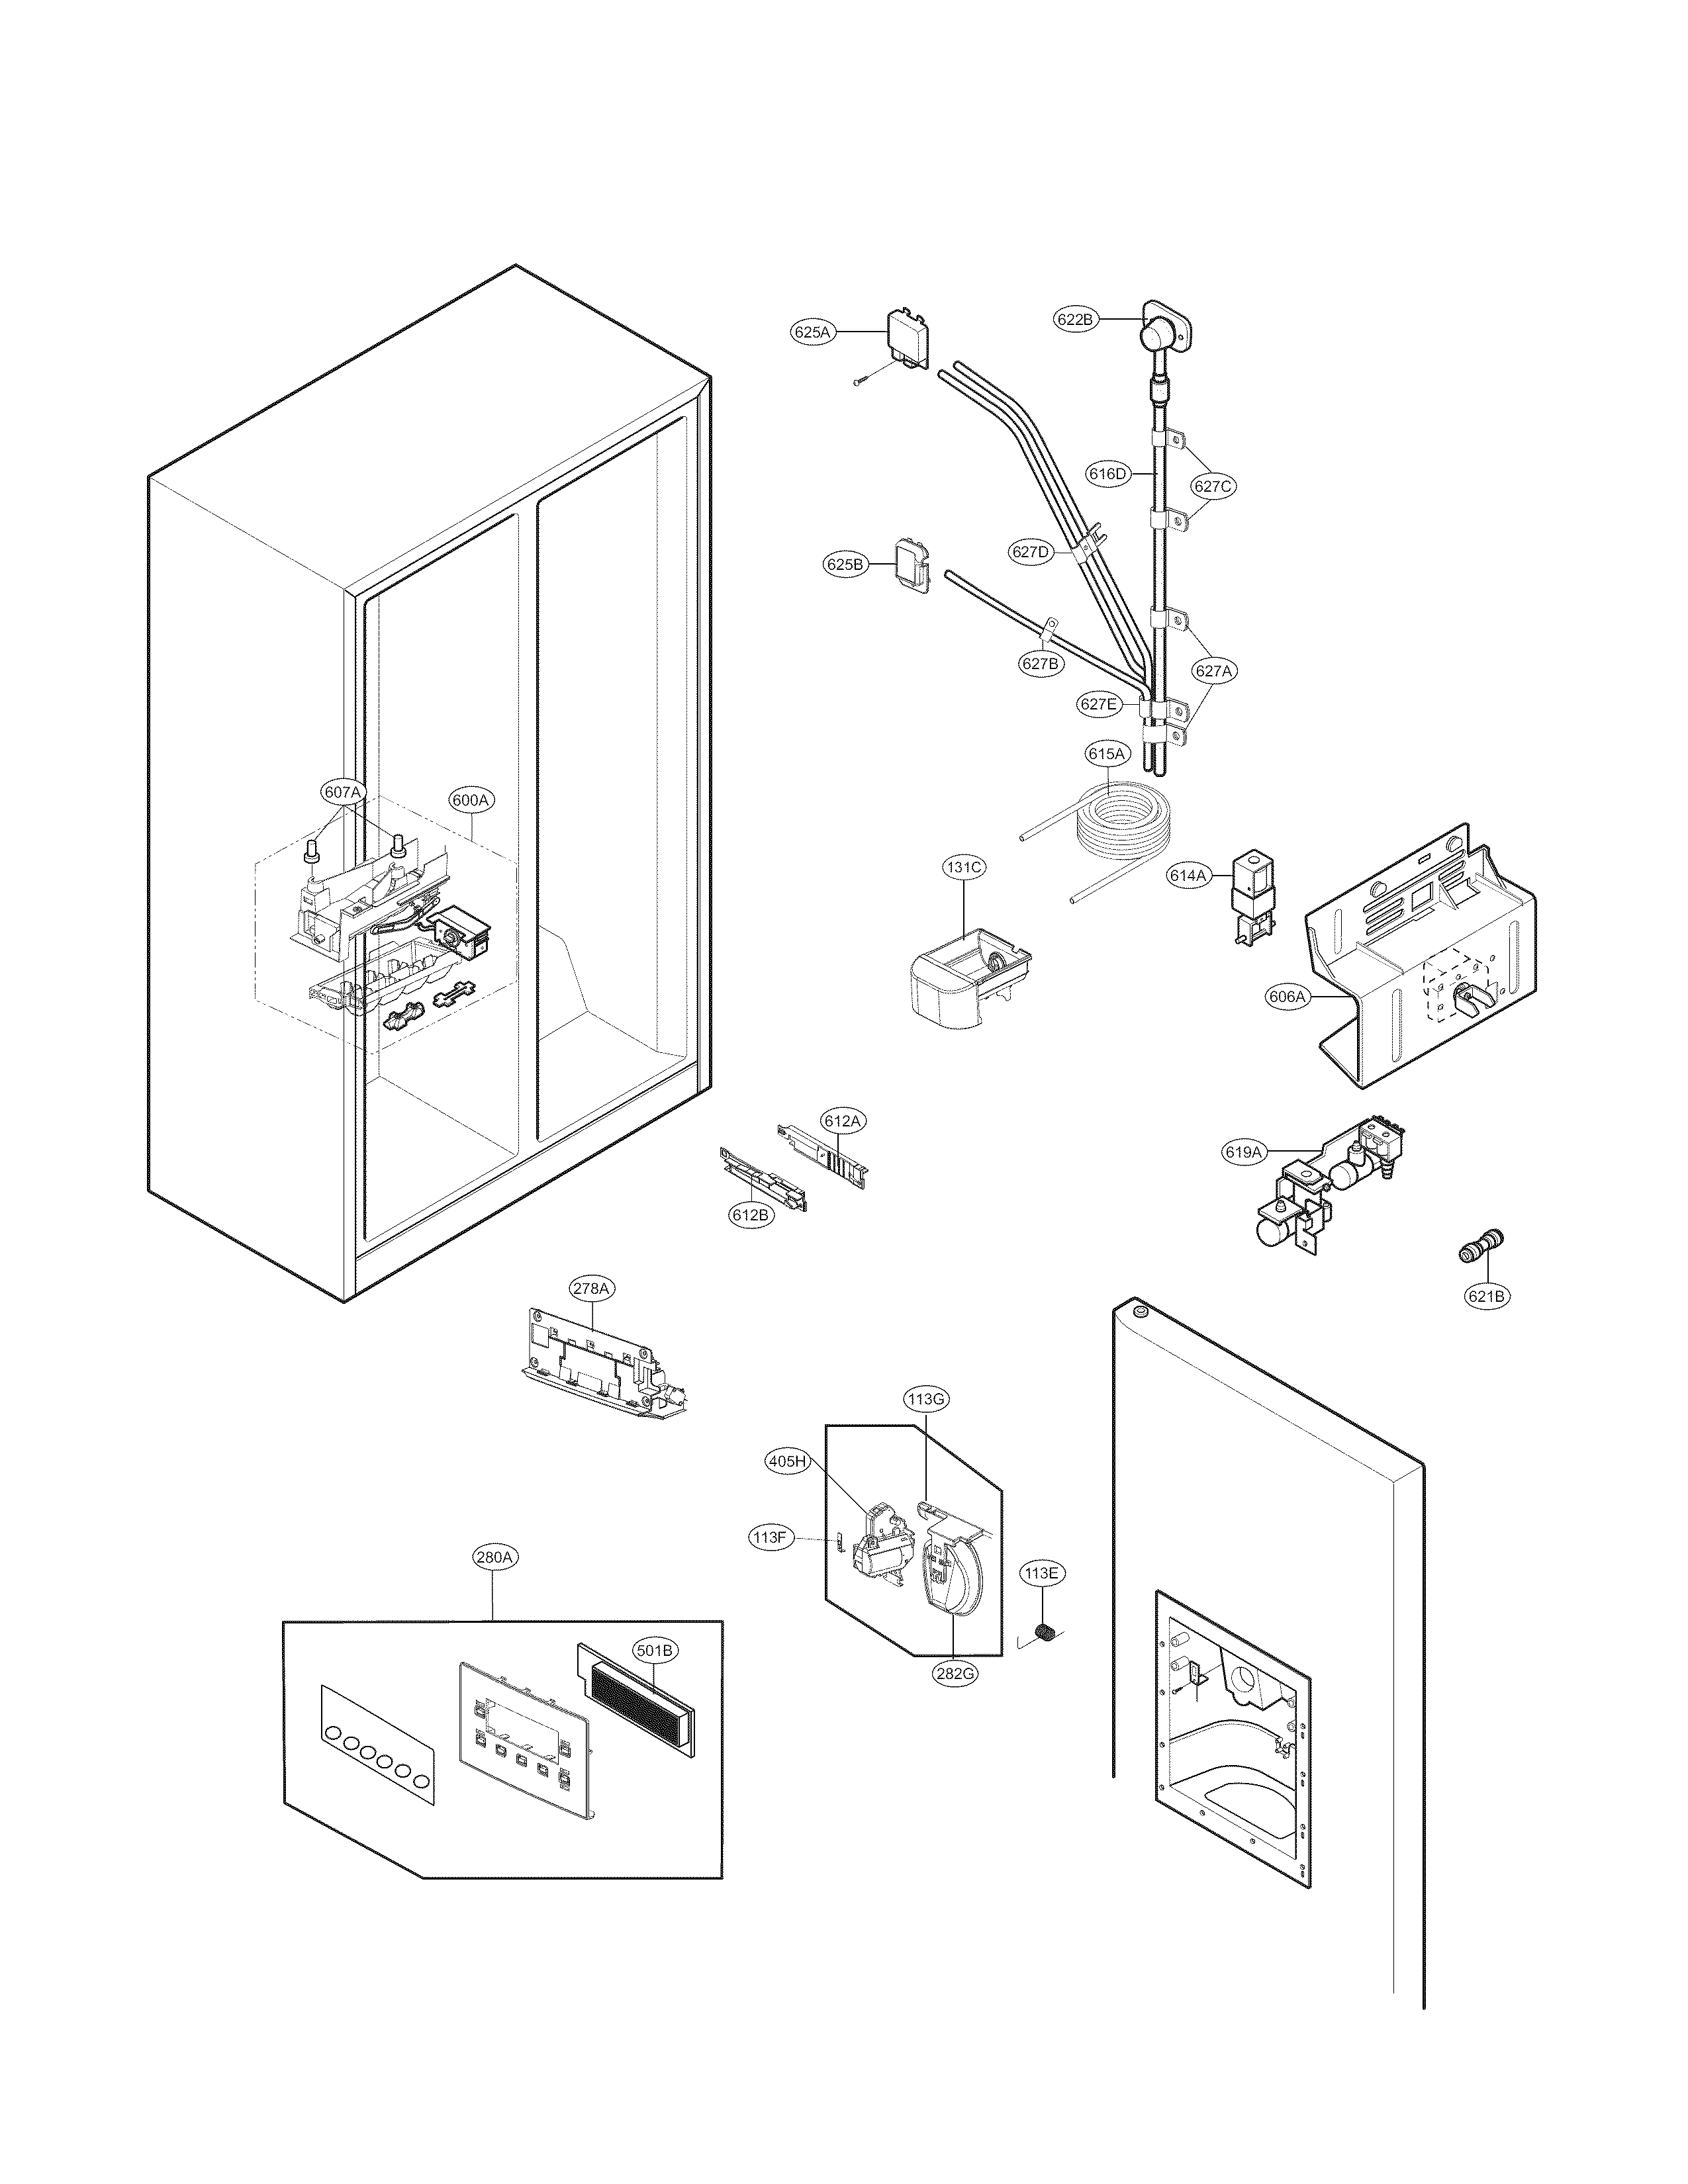 Kenmore 79551813410 side-by-side refrigerator parts